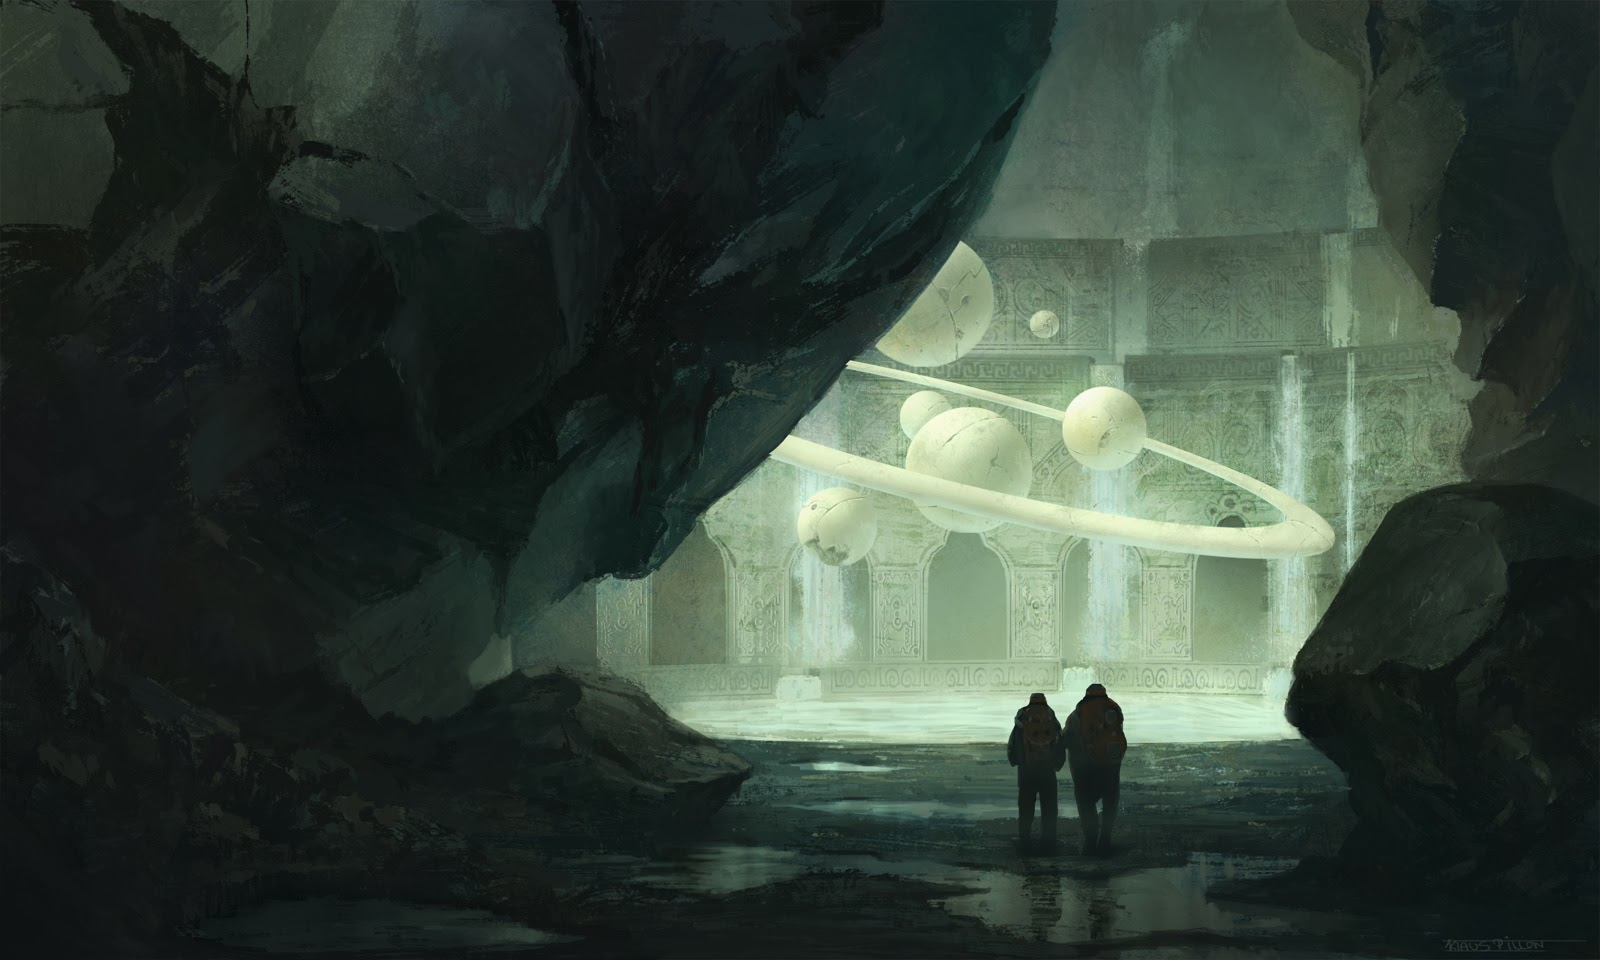 Klaus Pillon's art